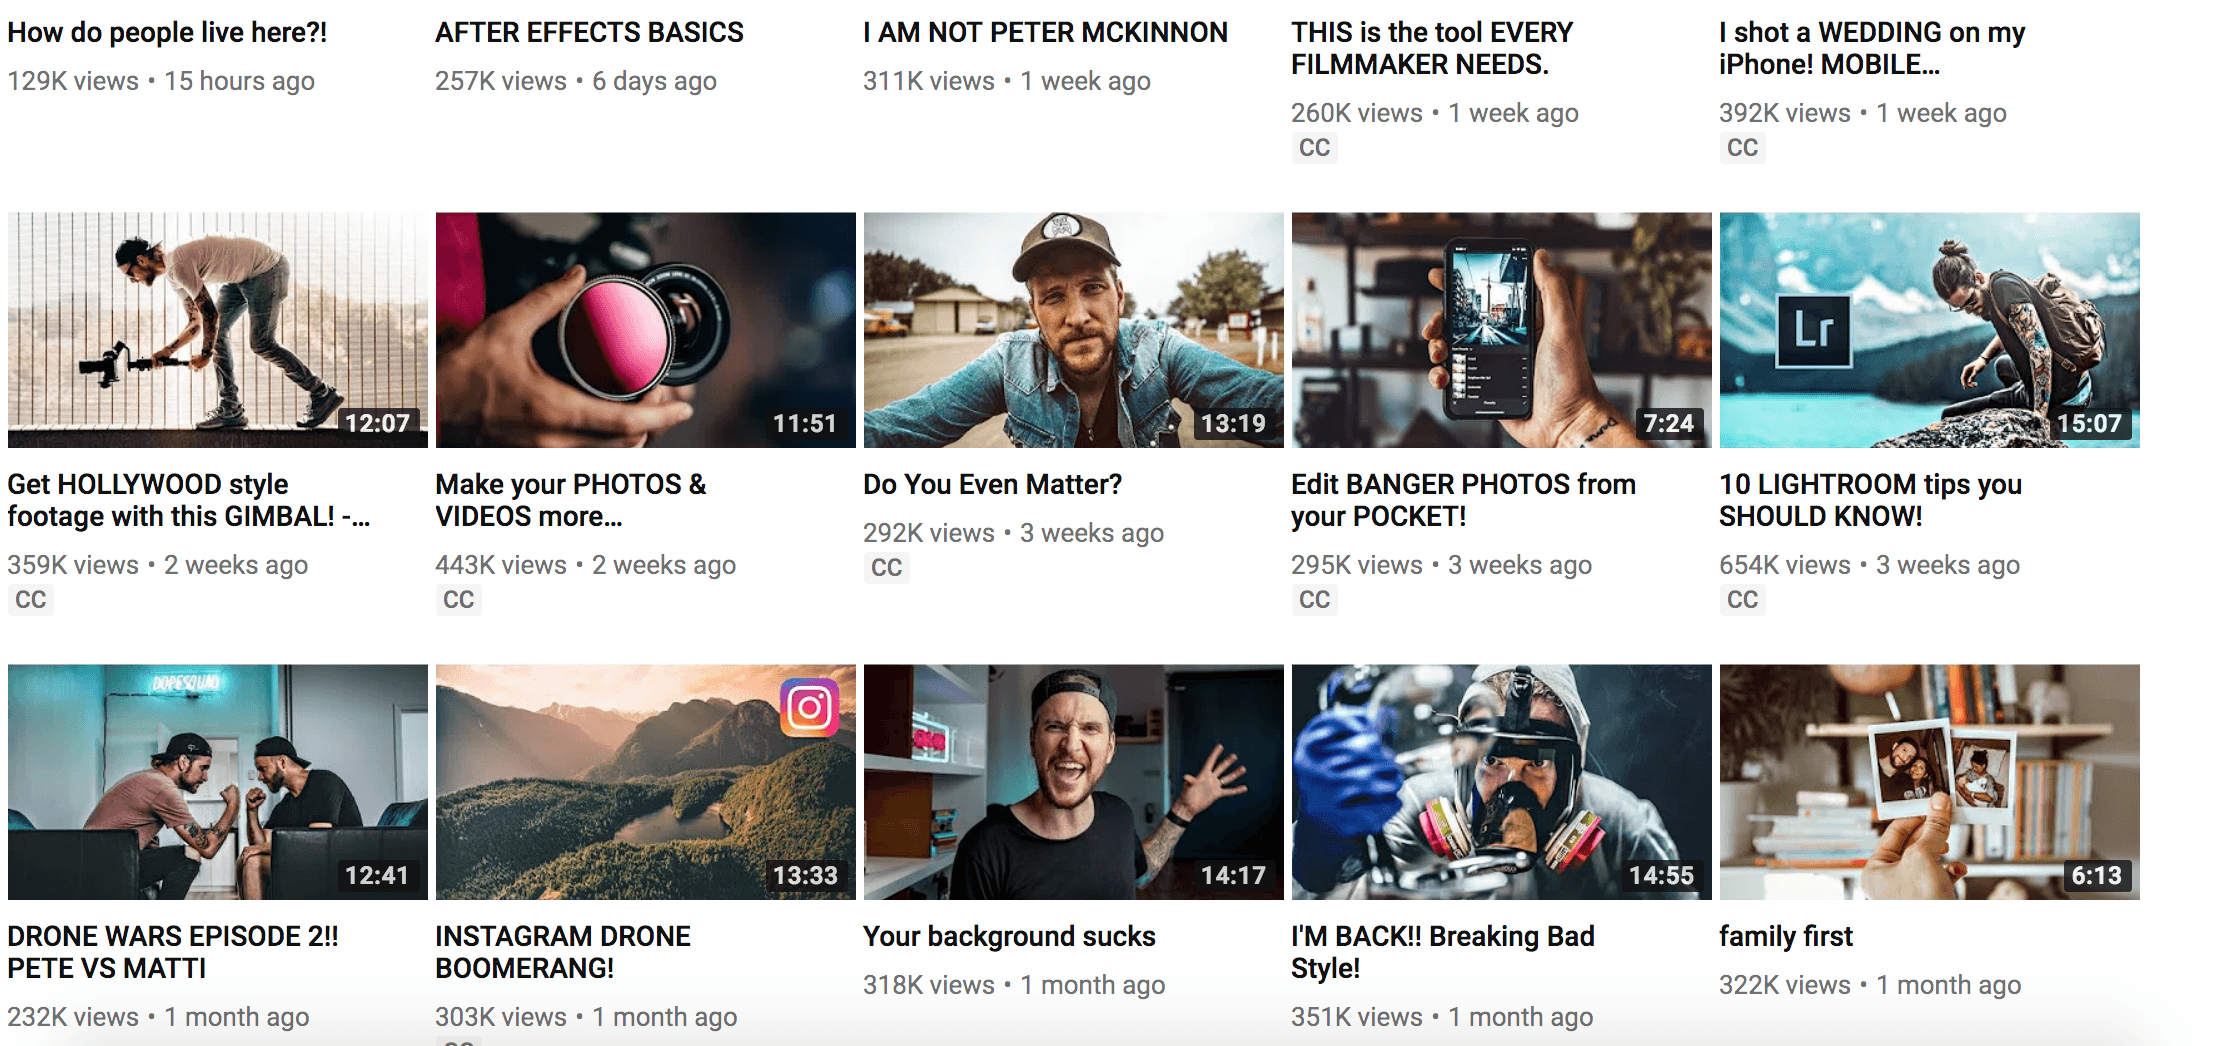 Peter McKinnon youtube seo guide how to rank youtube videos